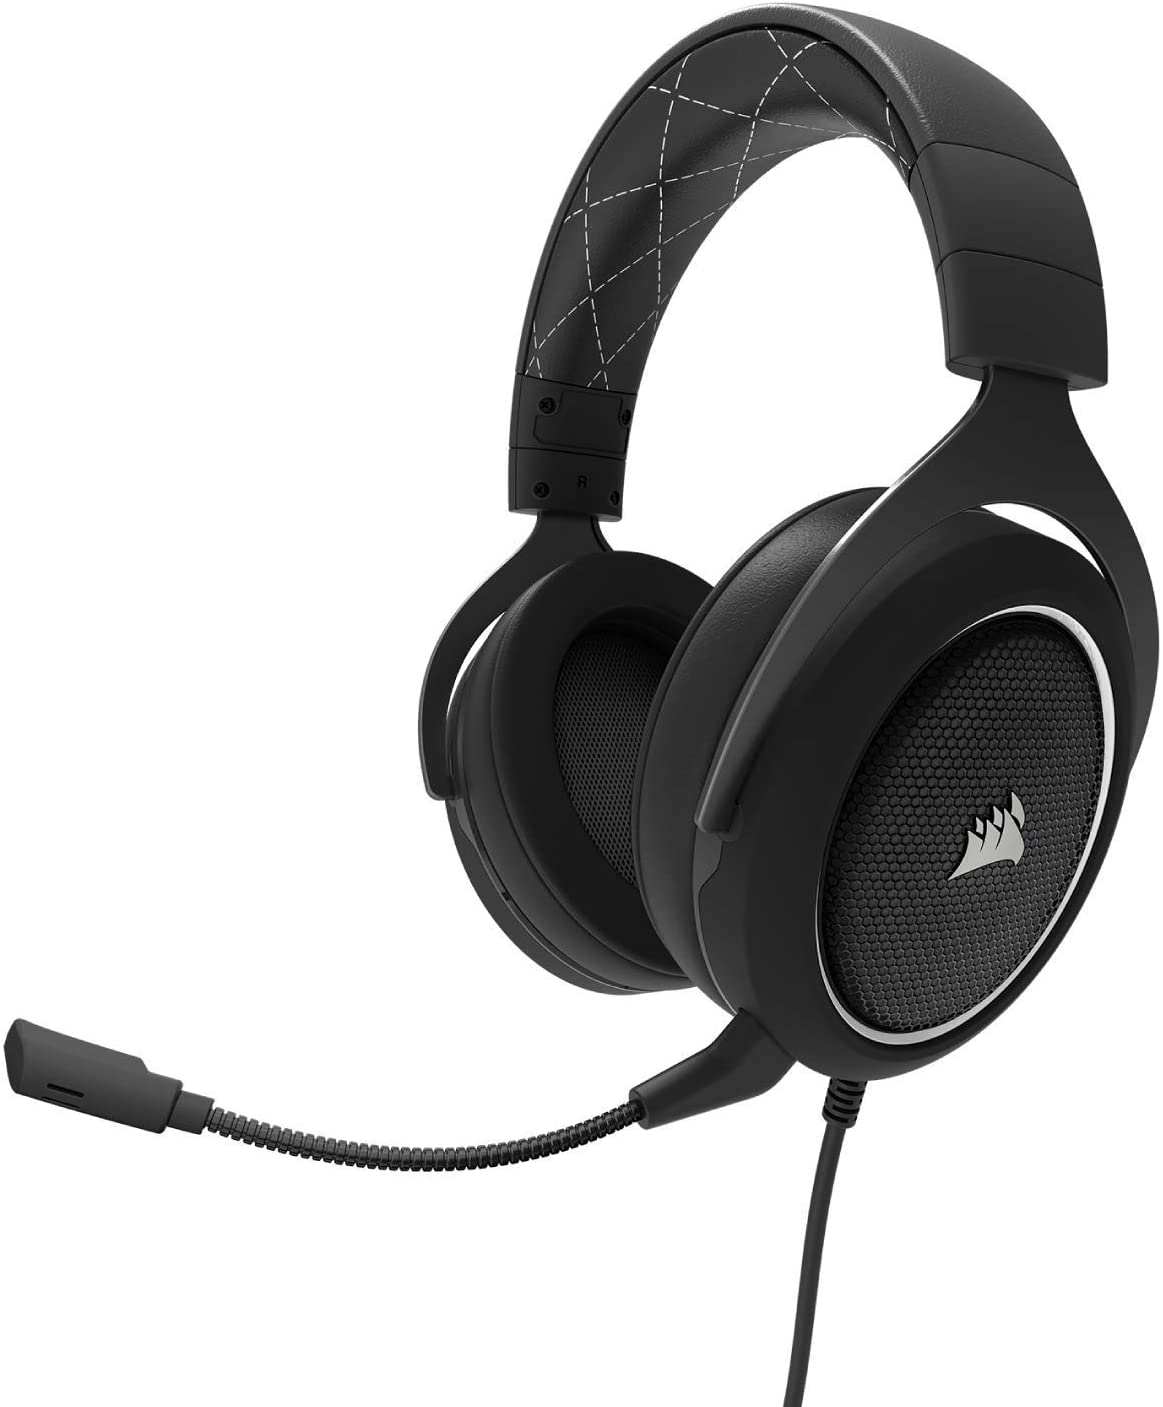 CORSAIR HS60 – 7.1 Virtual Surround Sound PC Gaming Headset w/USB DAC - Discord Certified Headphones – Compatible with Xbox One, PS4, and Nintendo Switch – White (Renewed)